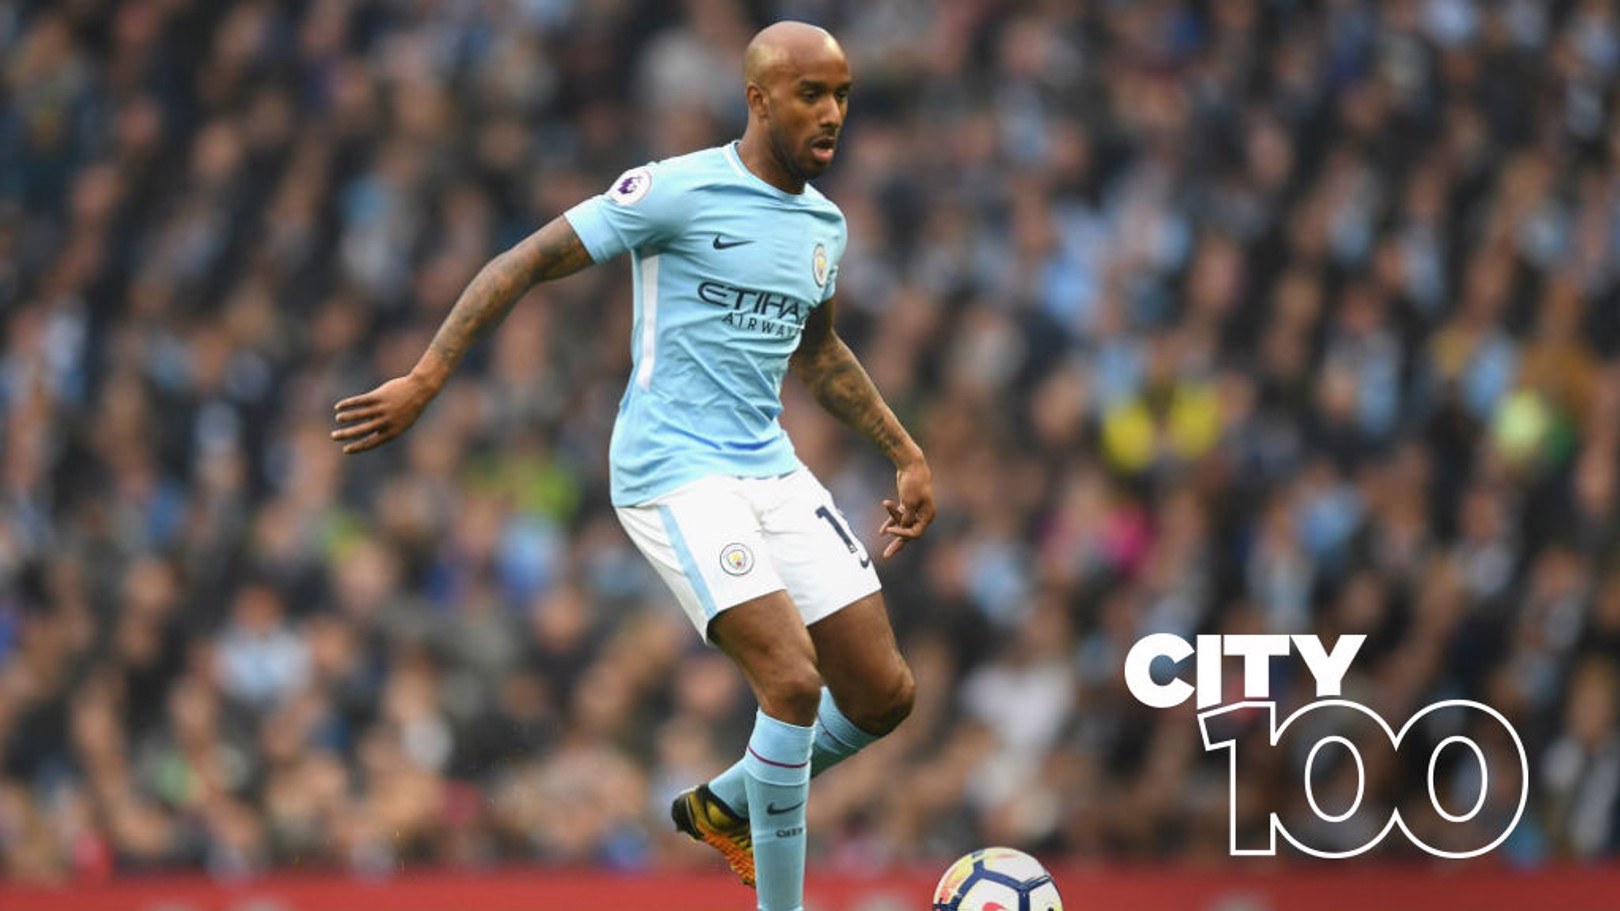 CITY 100: Delph's emergence as a left-back features in today's instalment